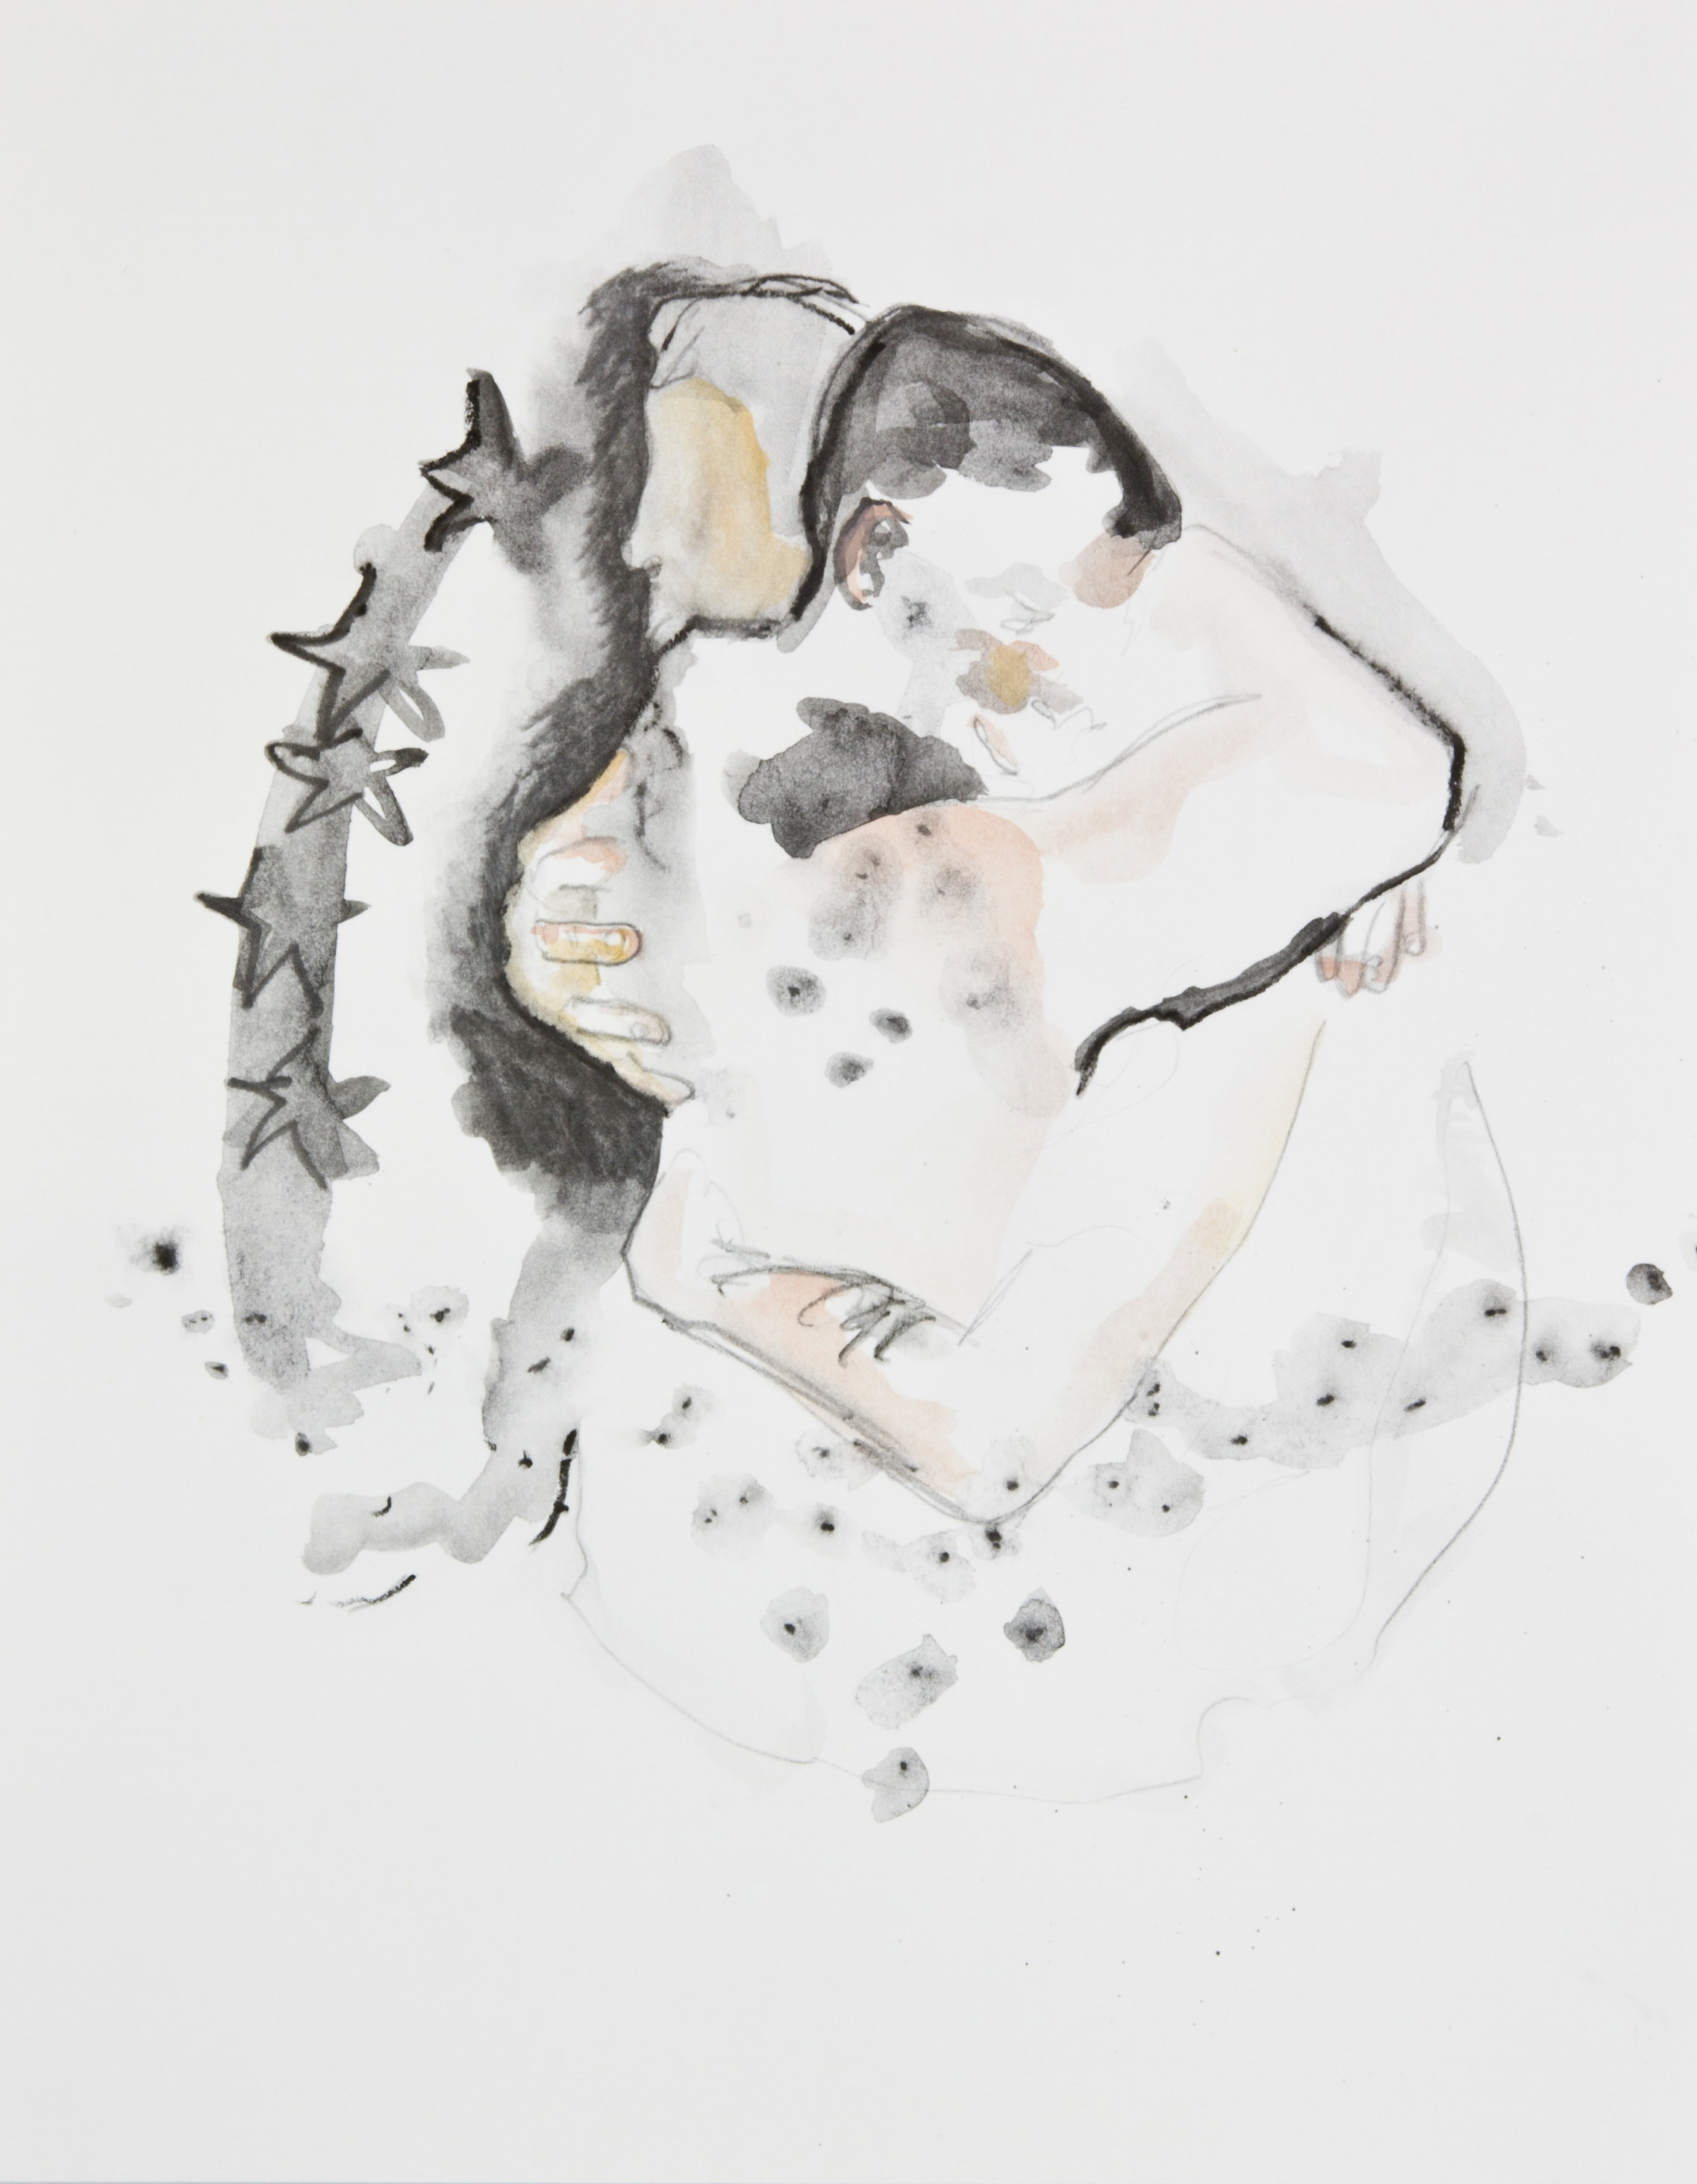 When Stars Collide, 2013, graphite, crayon and watercolor pencil on paper, 11x14 inches